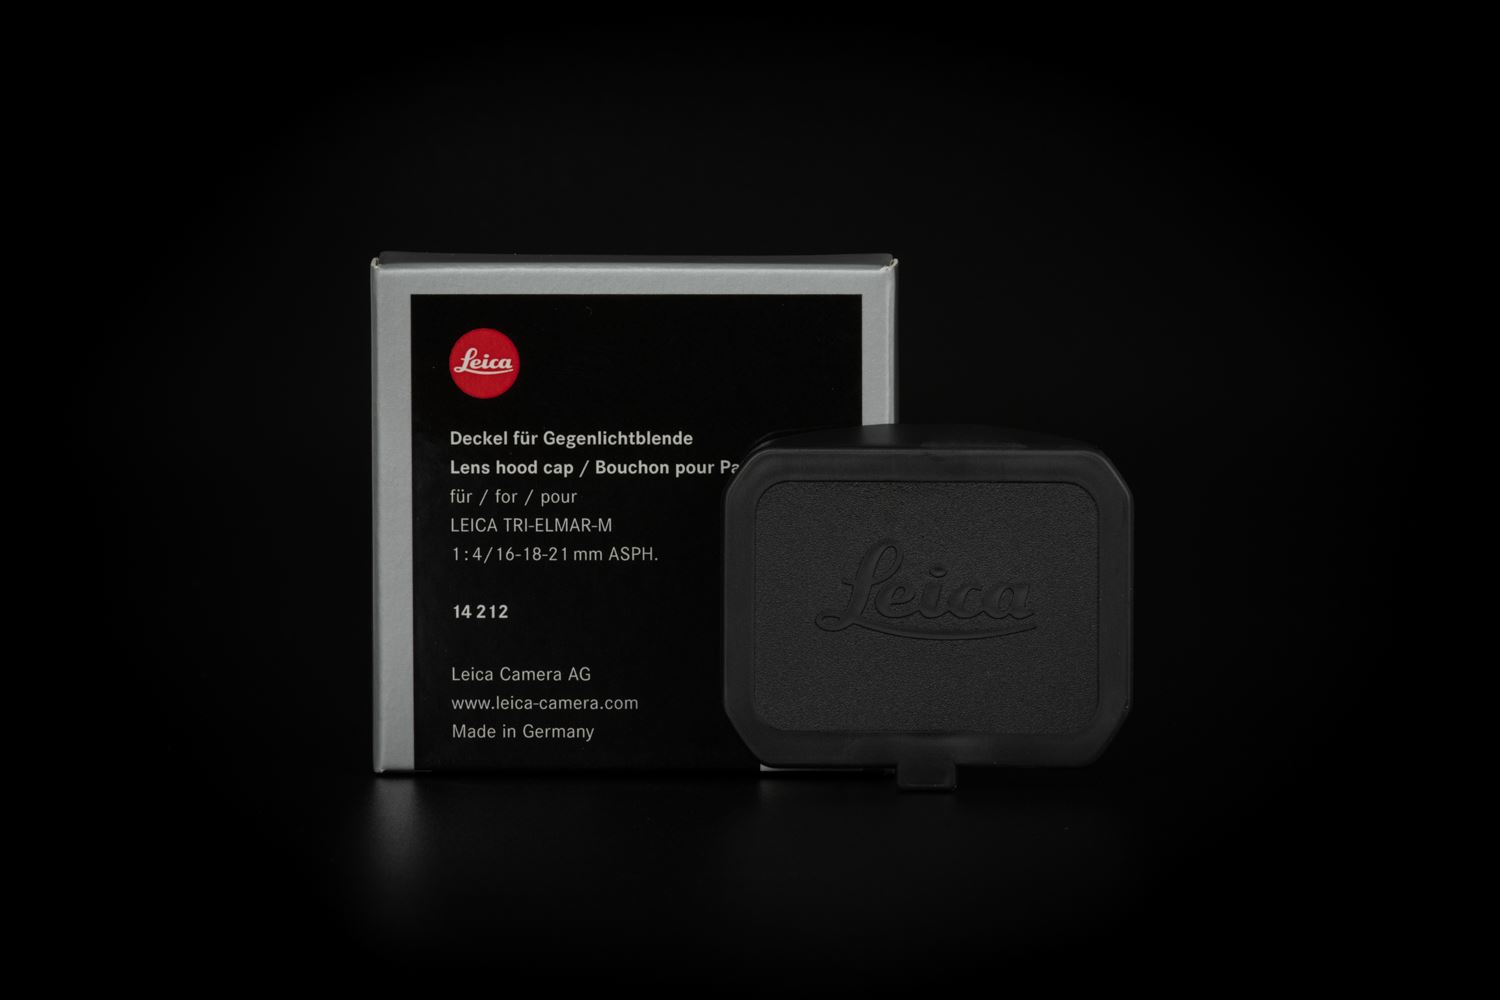 Picture of Leica Hood Cap, M16-18-21mm f/4, 21mm f/3.4, 35mm f/1.4